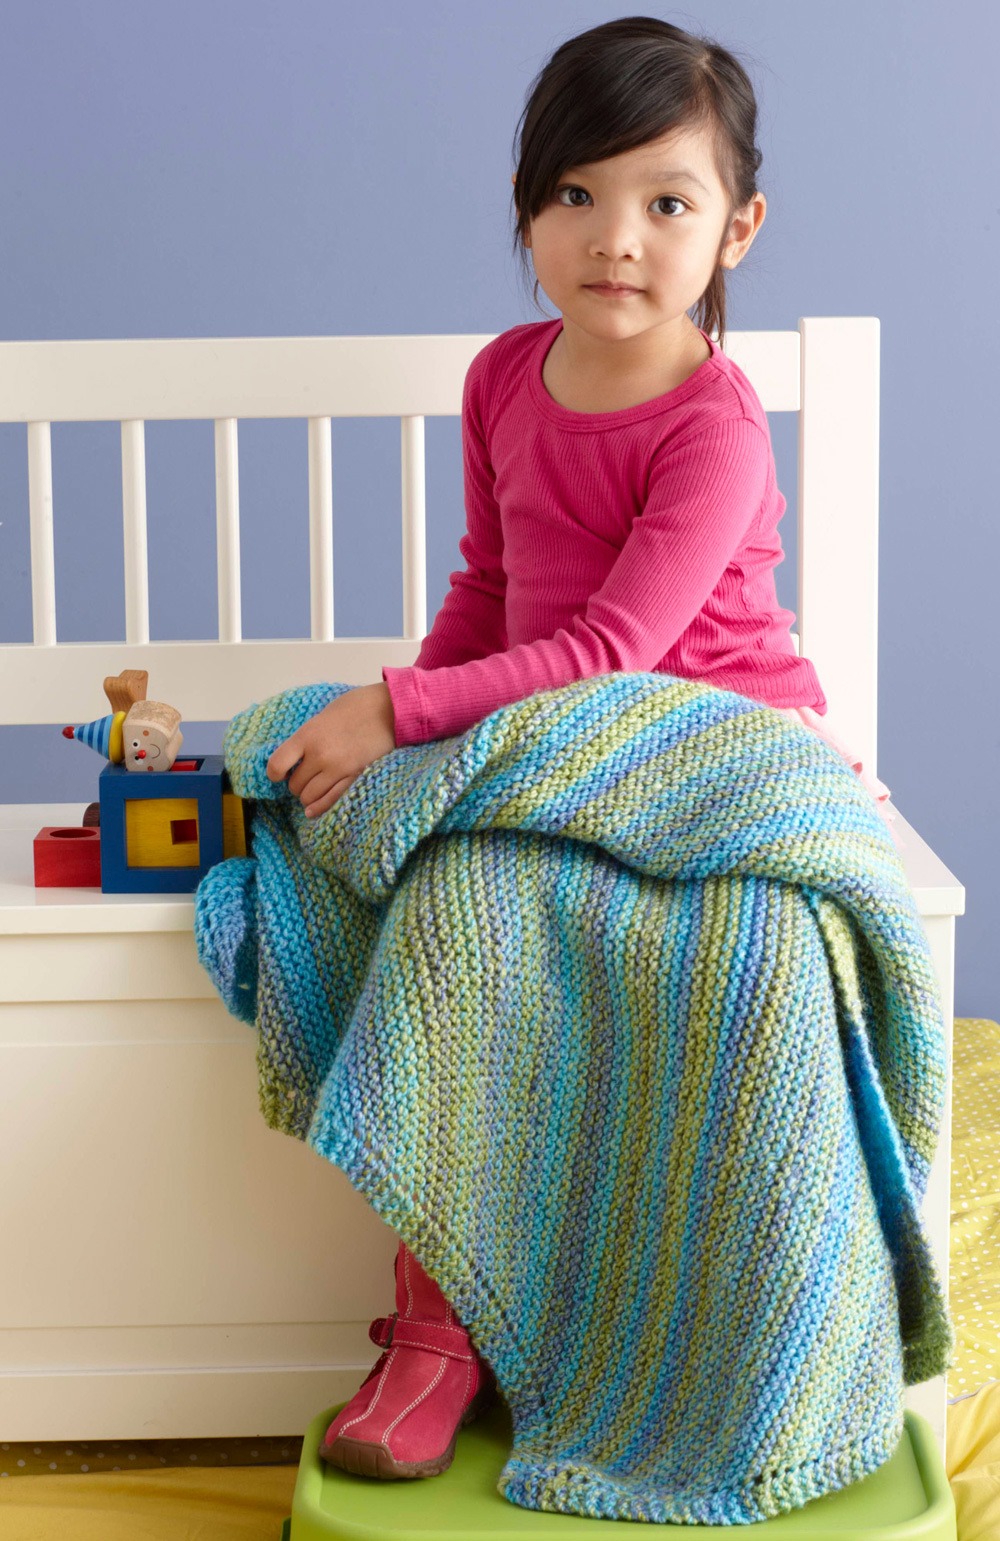 45 Baby Knitting Patterns: The Complete Guide to Free Knit Baby ...